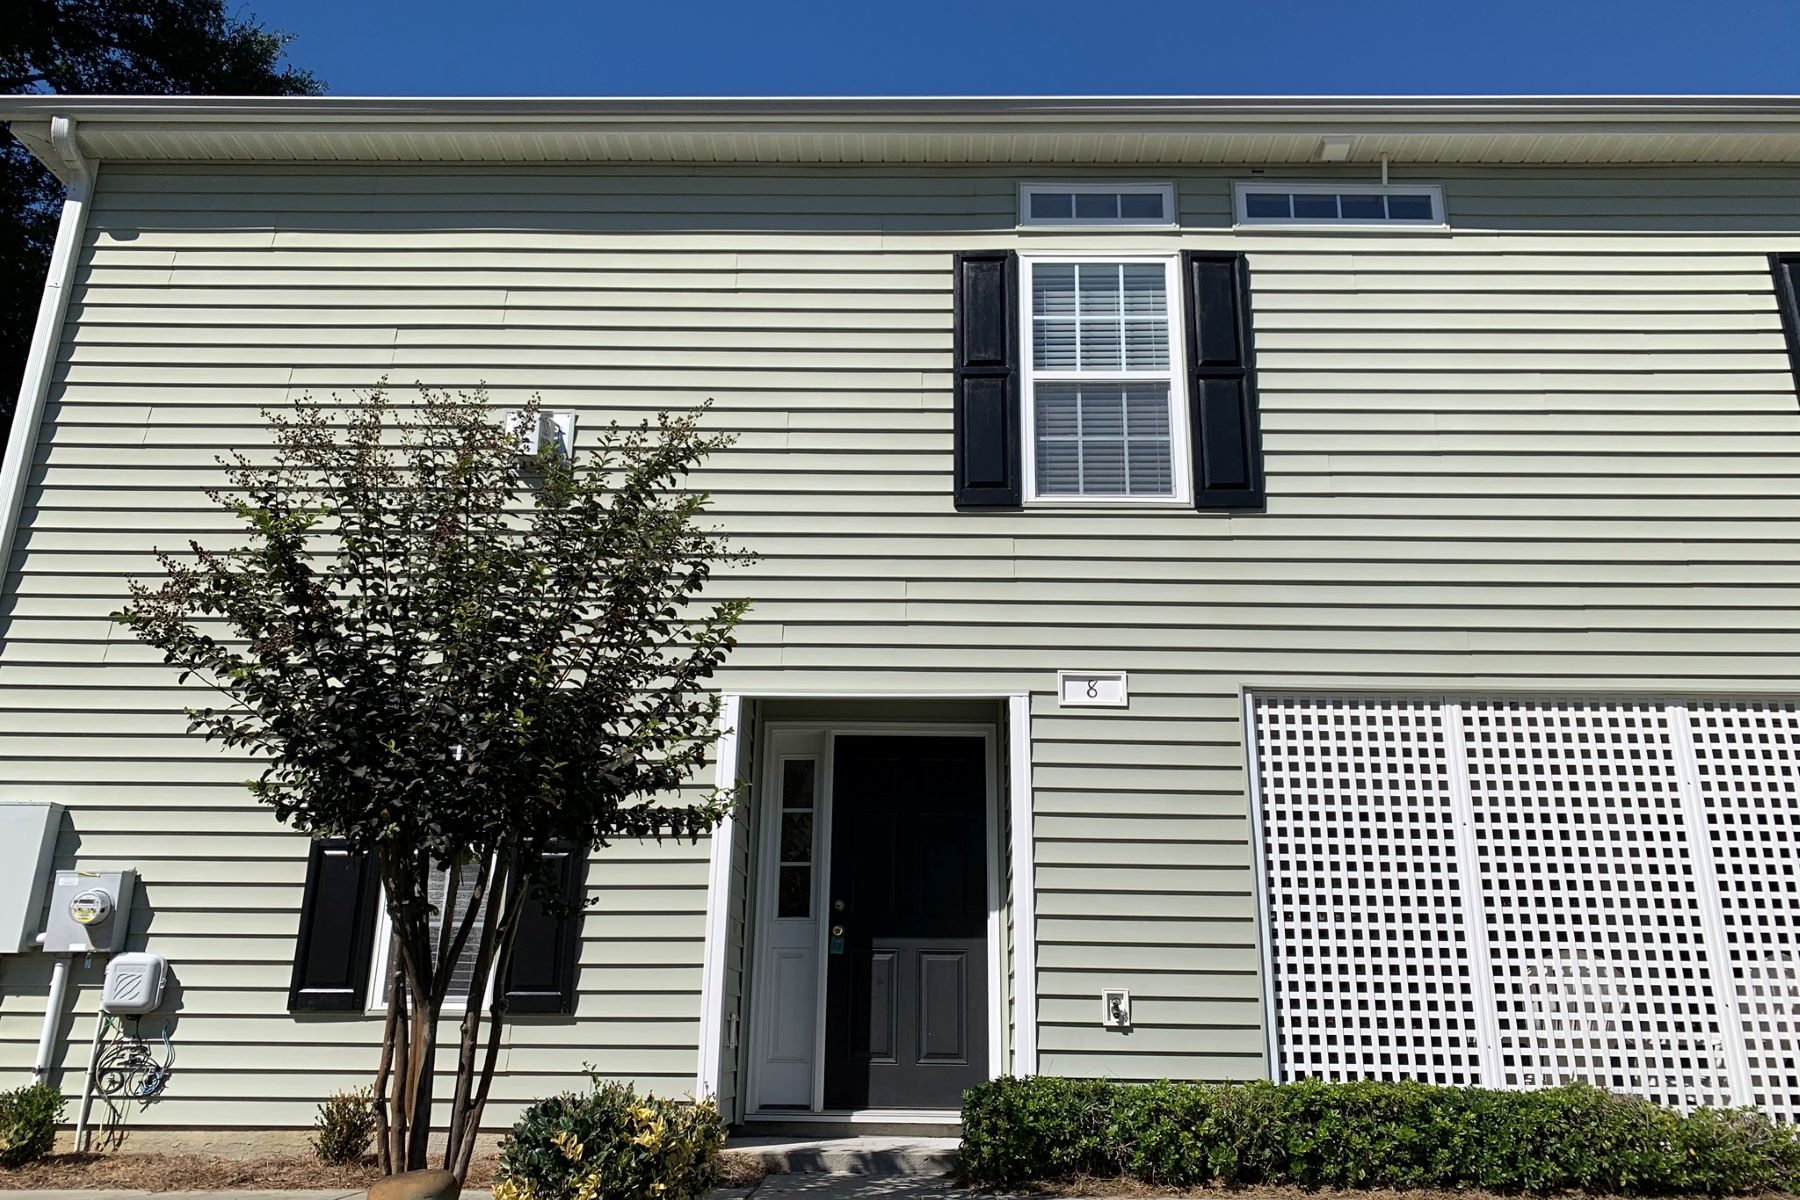 townhouses 용 매매 에 Charming Cottage with Vaulted Ceilings 670 2nd Avenue N 8, North Myrtle Beach, 사우스캐놀라이나 29582 미국